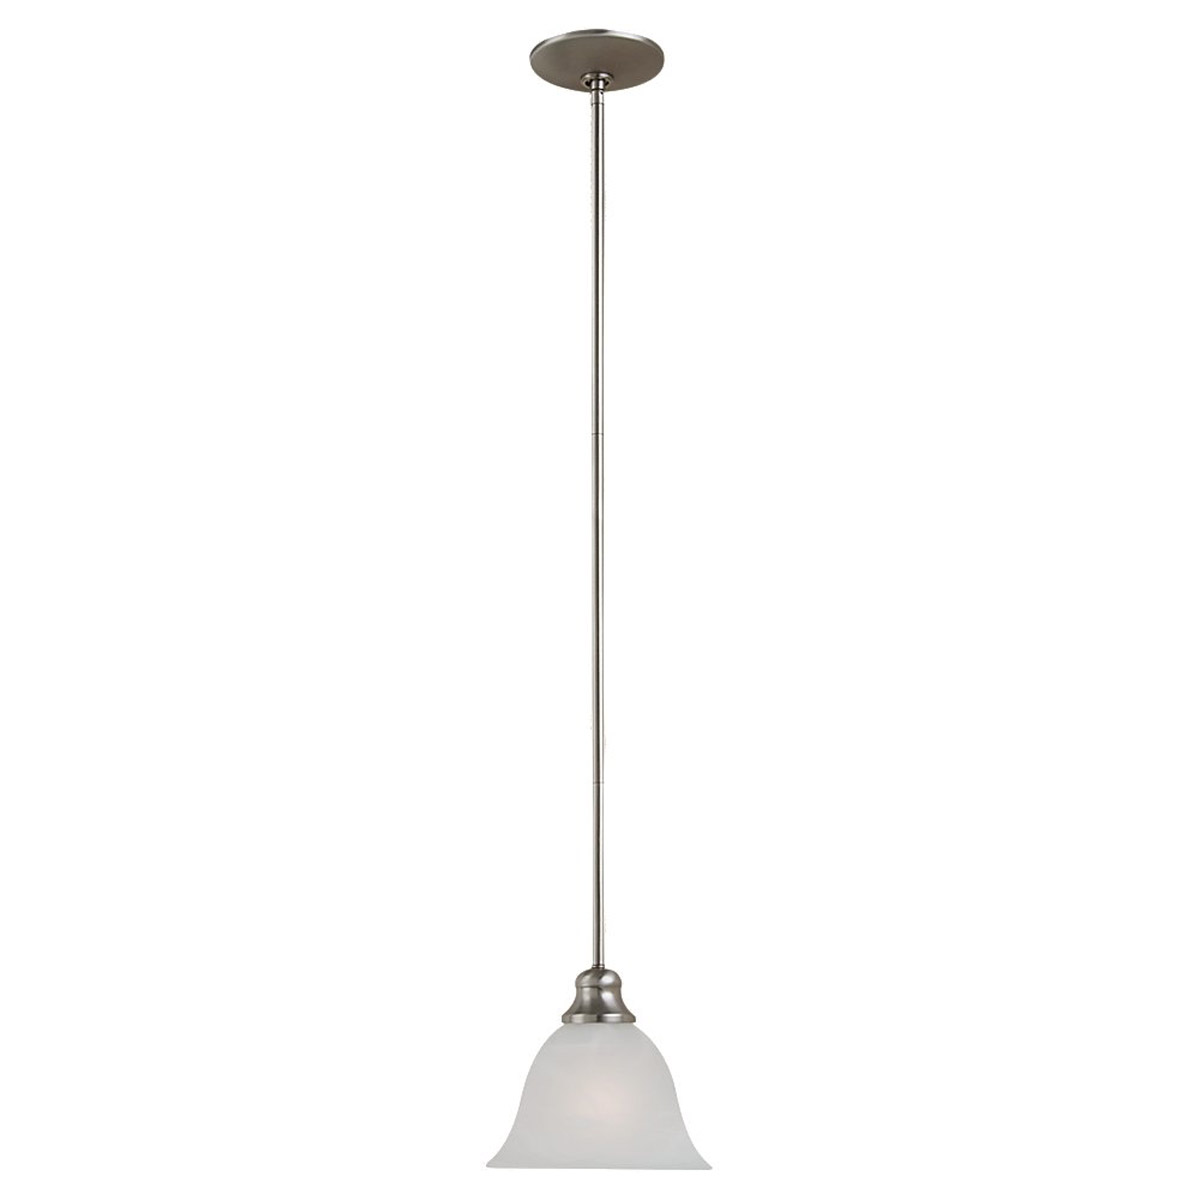 Sea Gull Lighting Windgate 1 Light Mini Pendant in Brushed Nickel 61940BLE-962